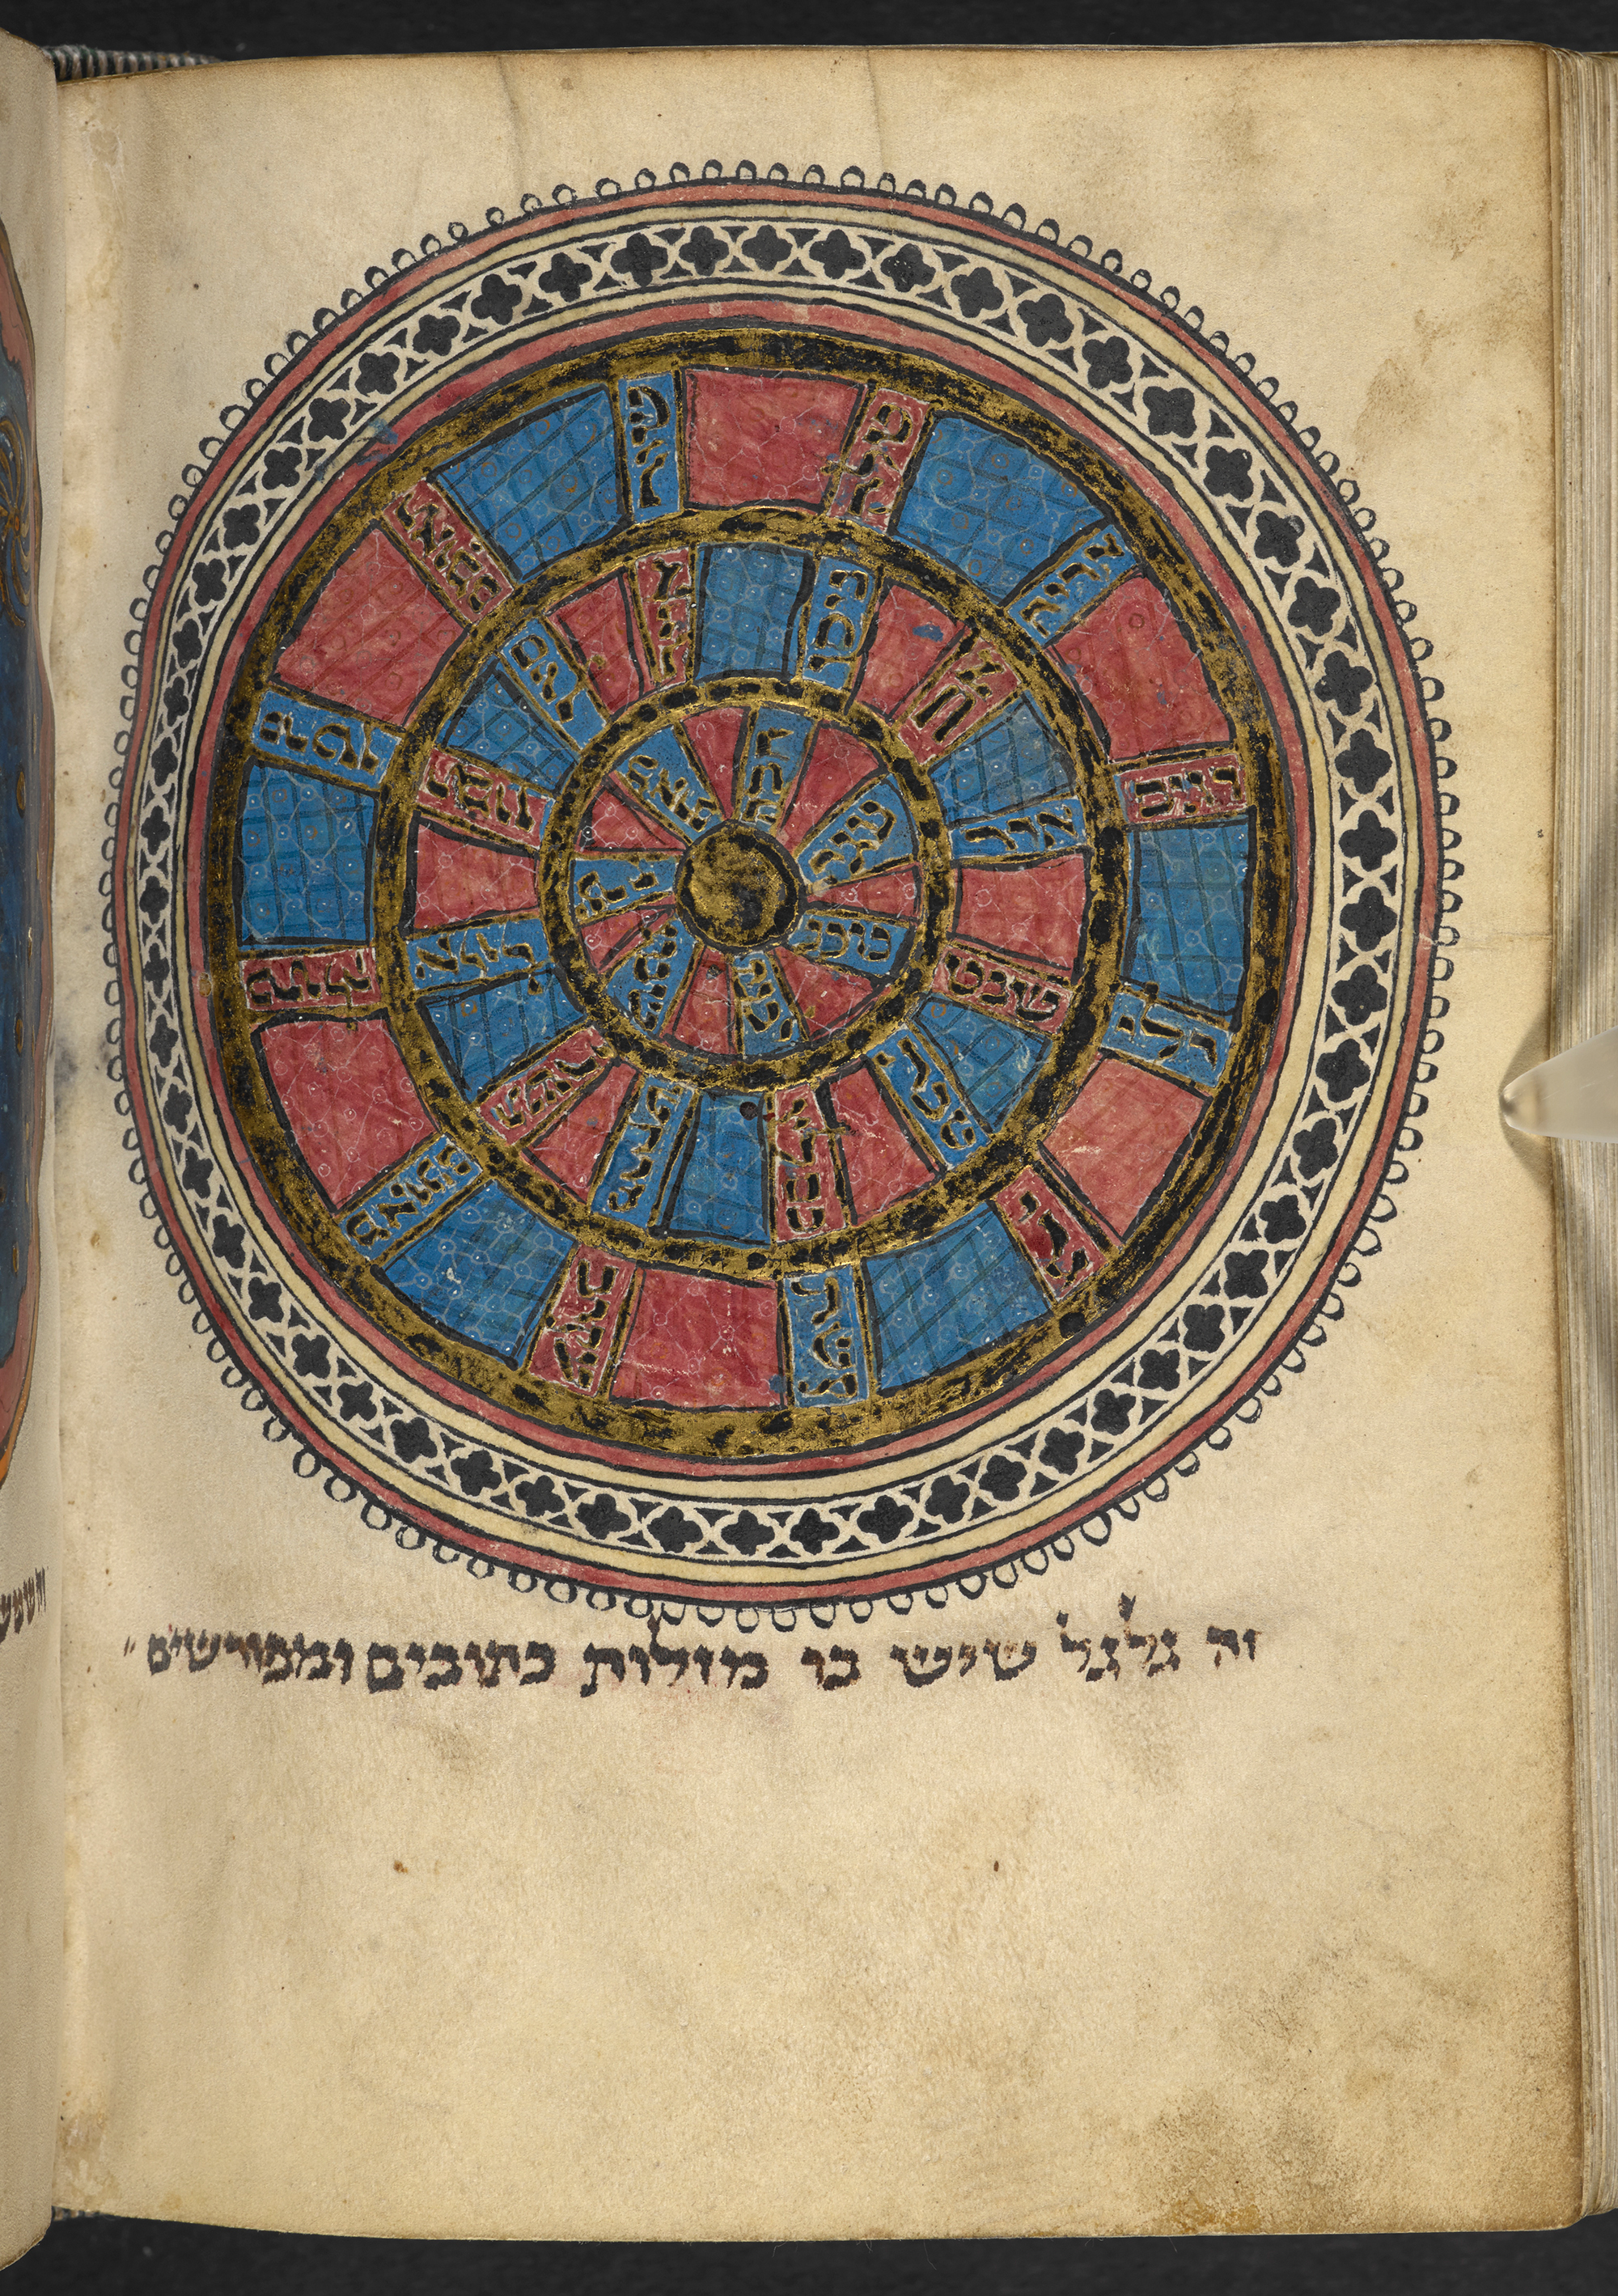 The zodiac, Miscellany of biblical and other texts ('The Northern French Miscellany'), Add MS 11639, Hebrew Manuscripts Digitisation Project, British Library